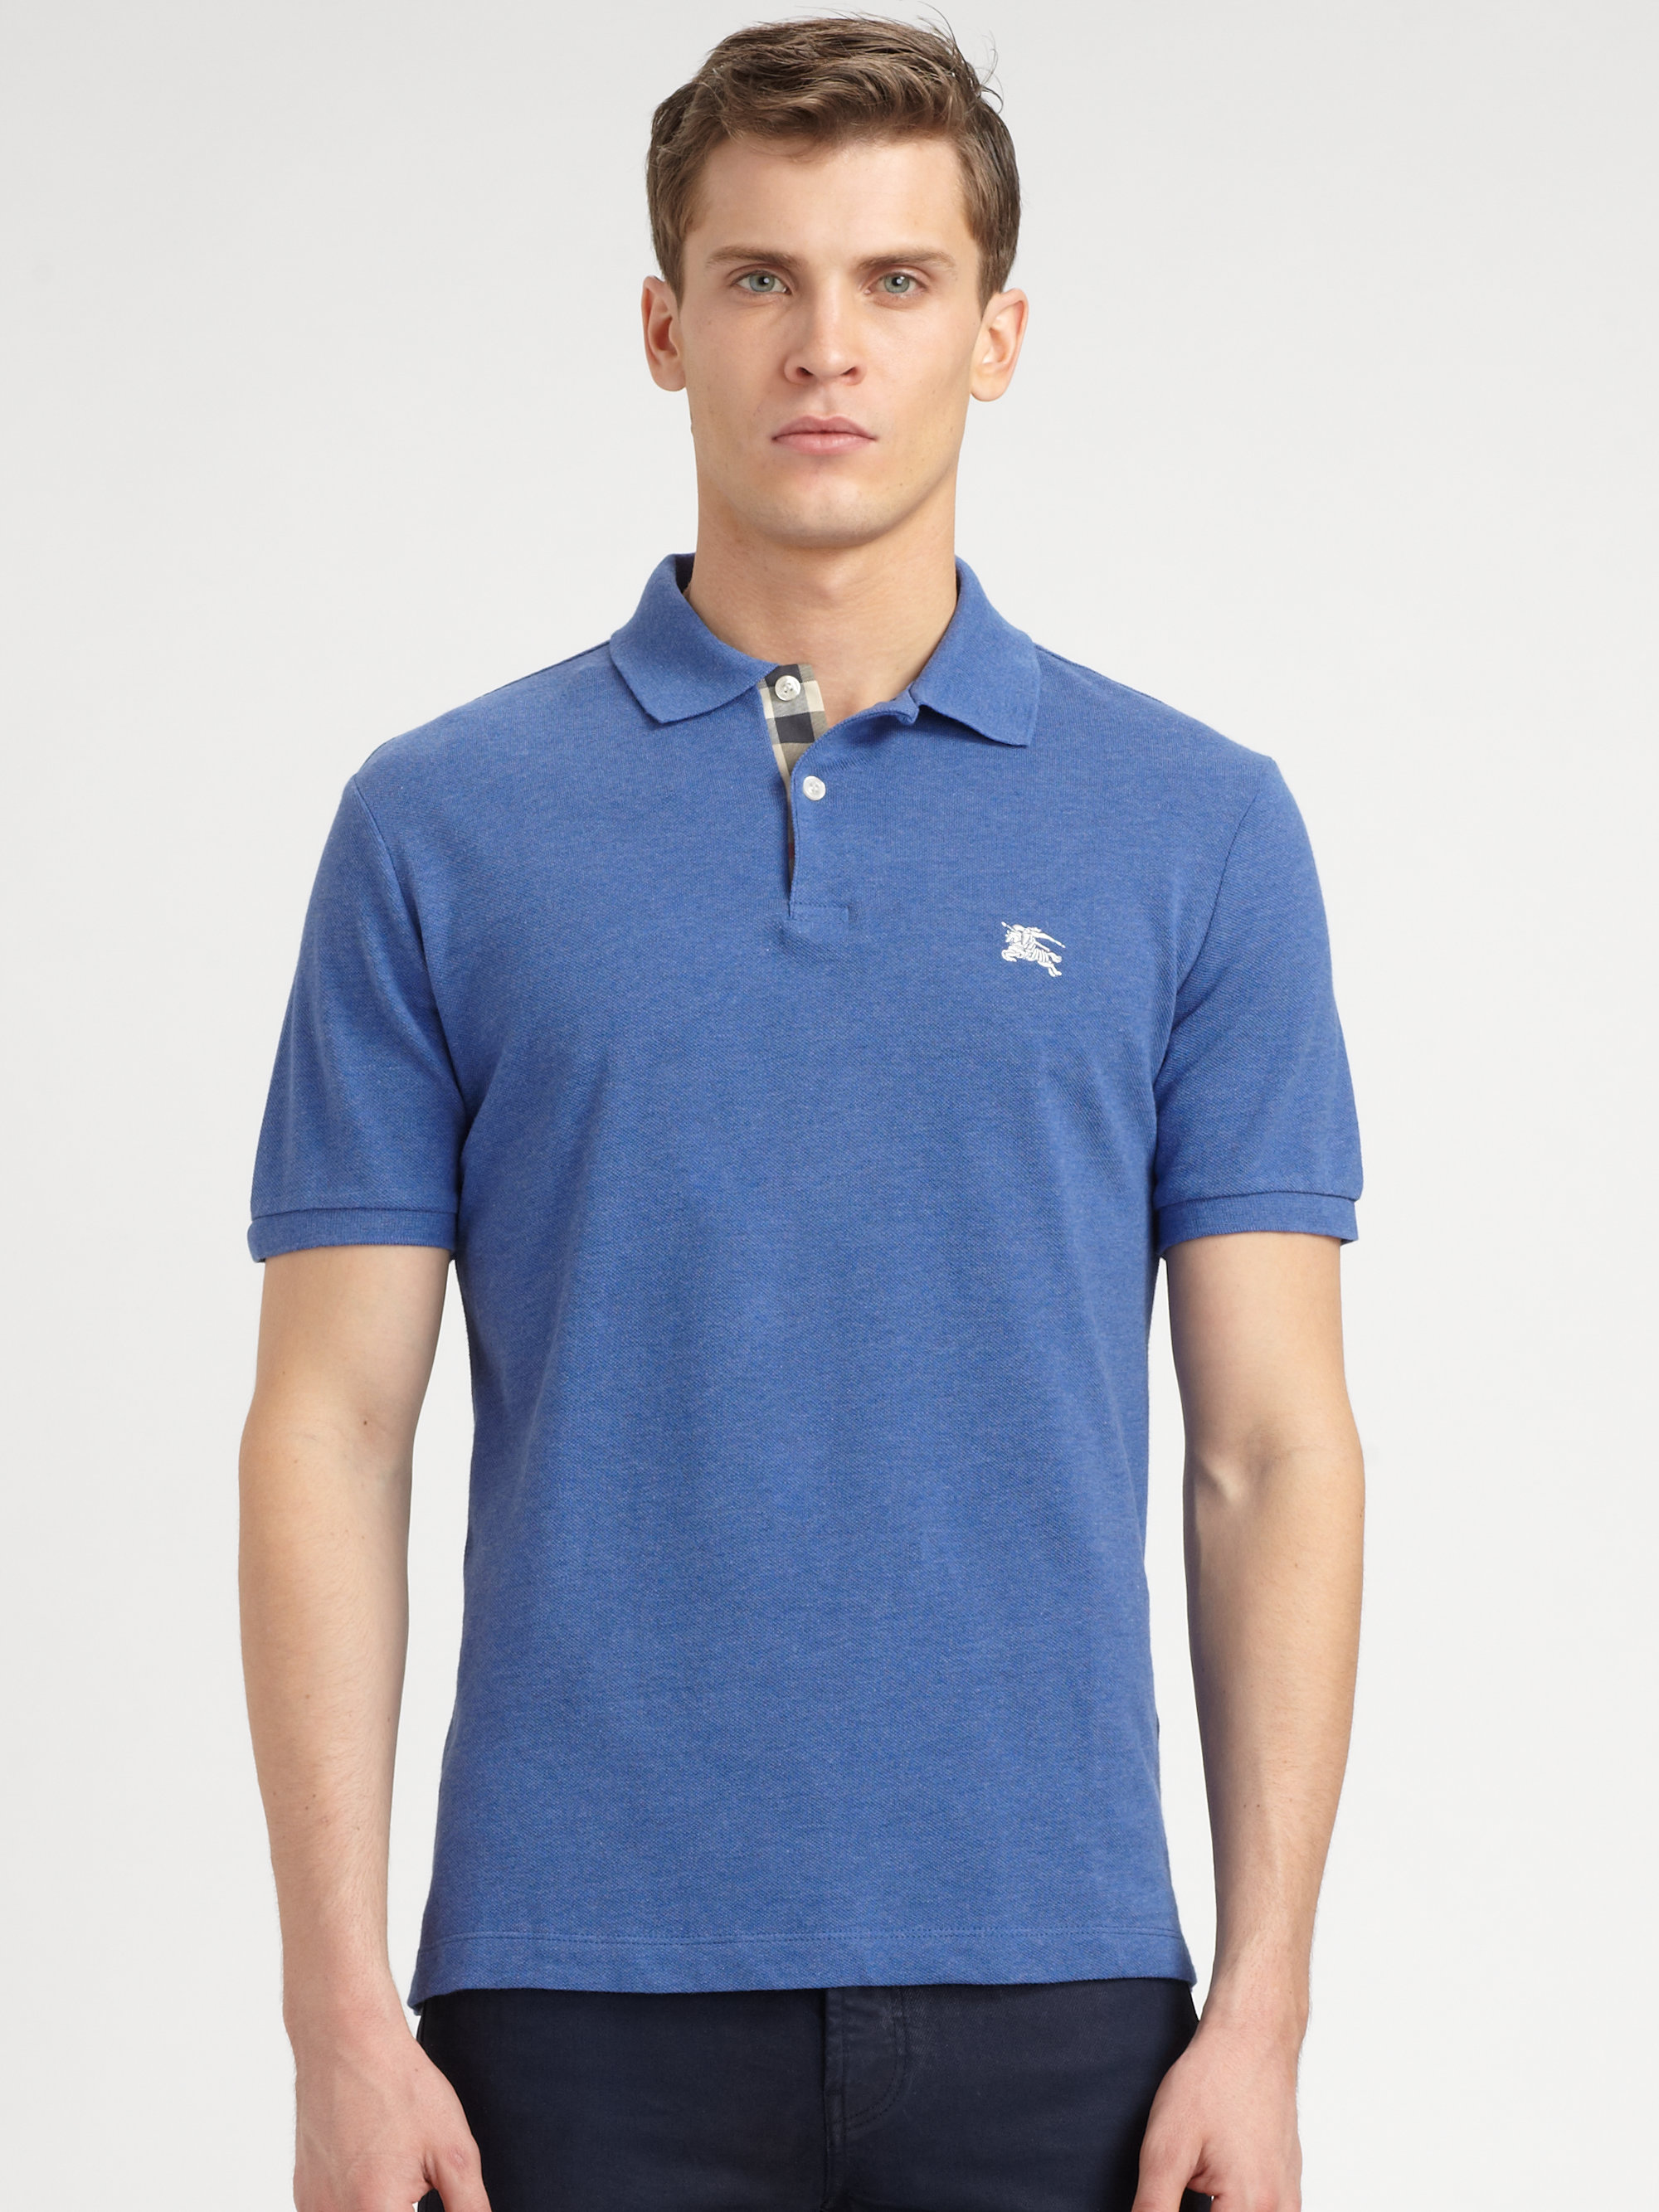 Burberry Brit Cotton Polo Shirt In Blue For Men Lyst